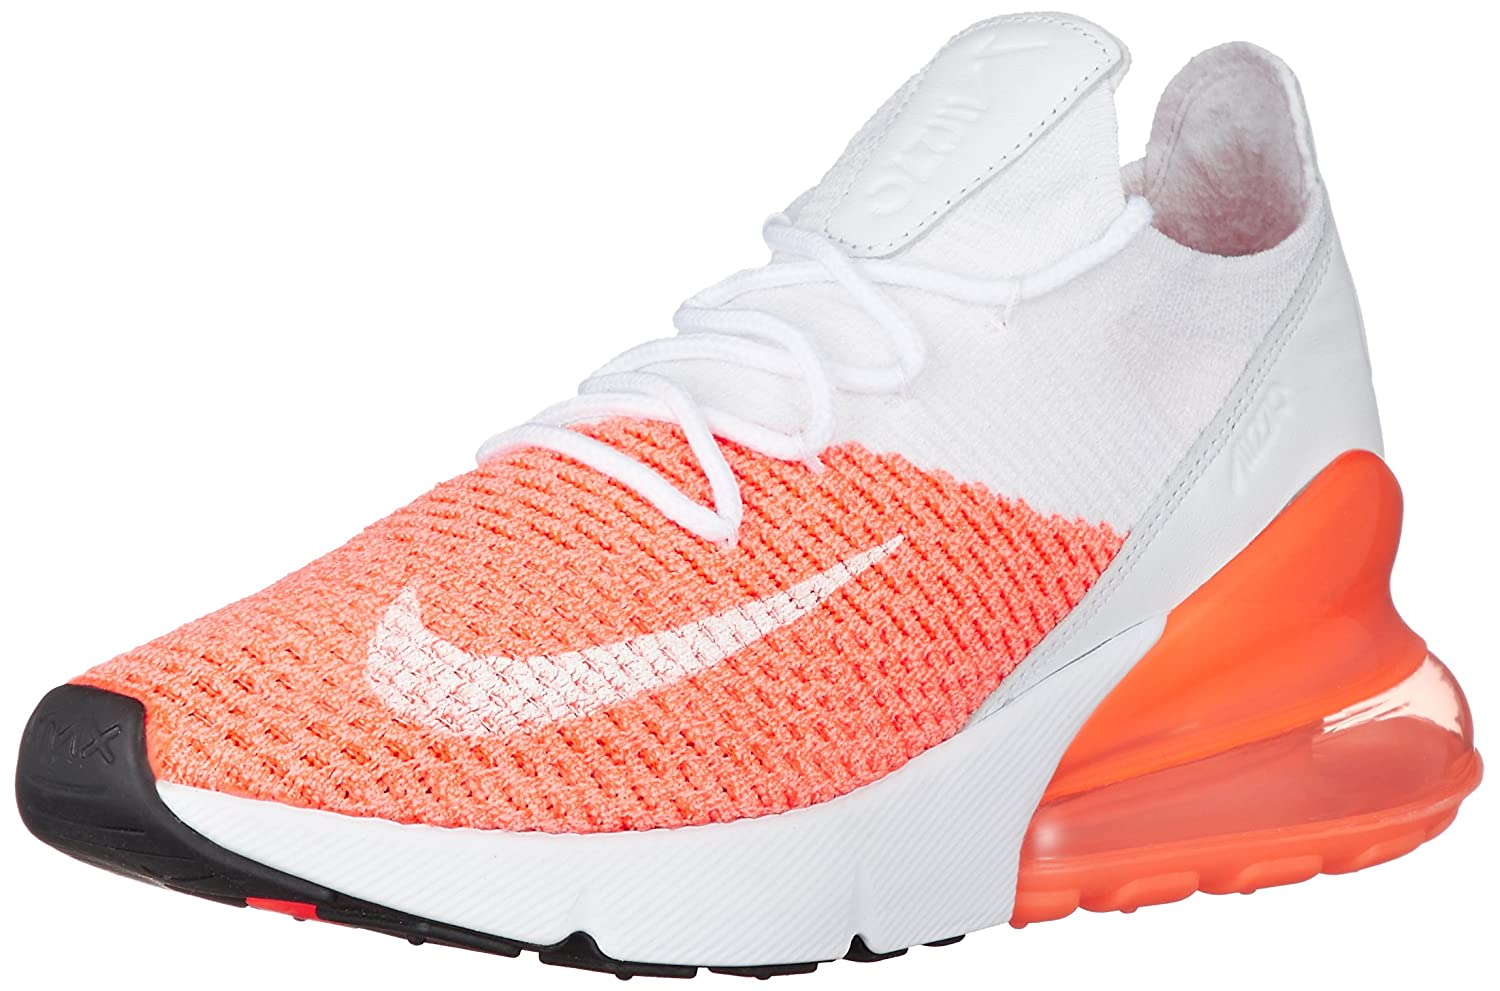 new arrival 8f665 253f3 Nike Air Max 270 Flyknit Womens